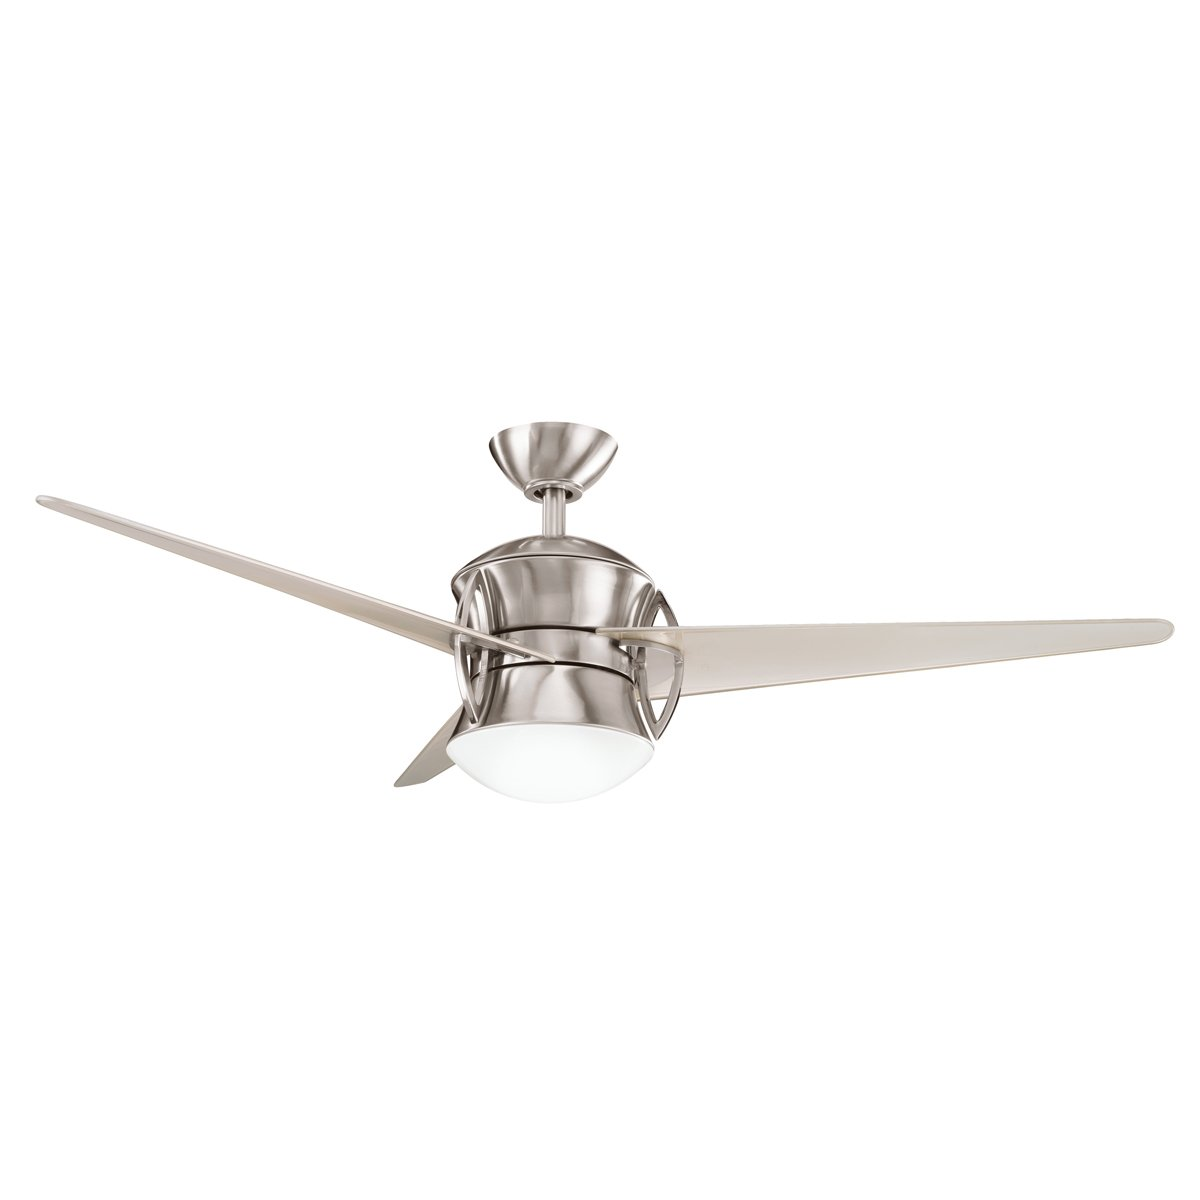 Kichler 300125bss 54 ceiling fan amazon aloadofball Choice Image